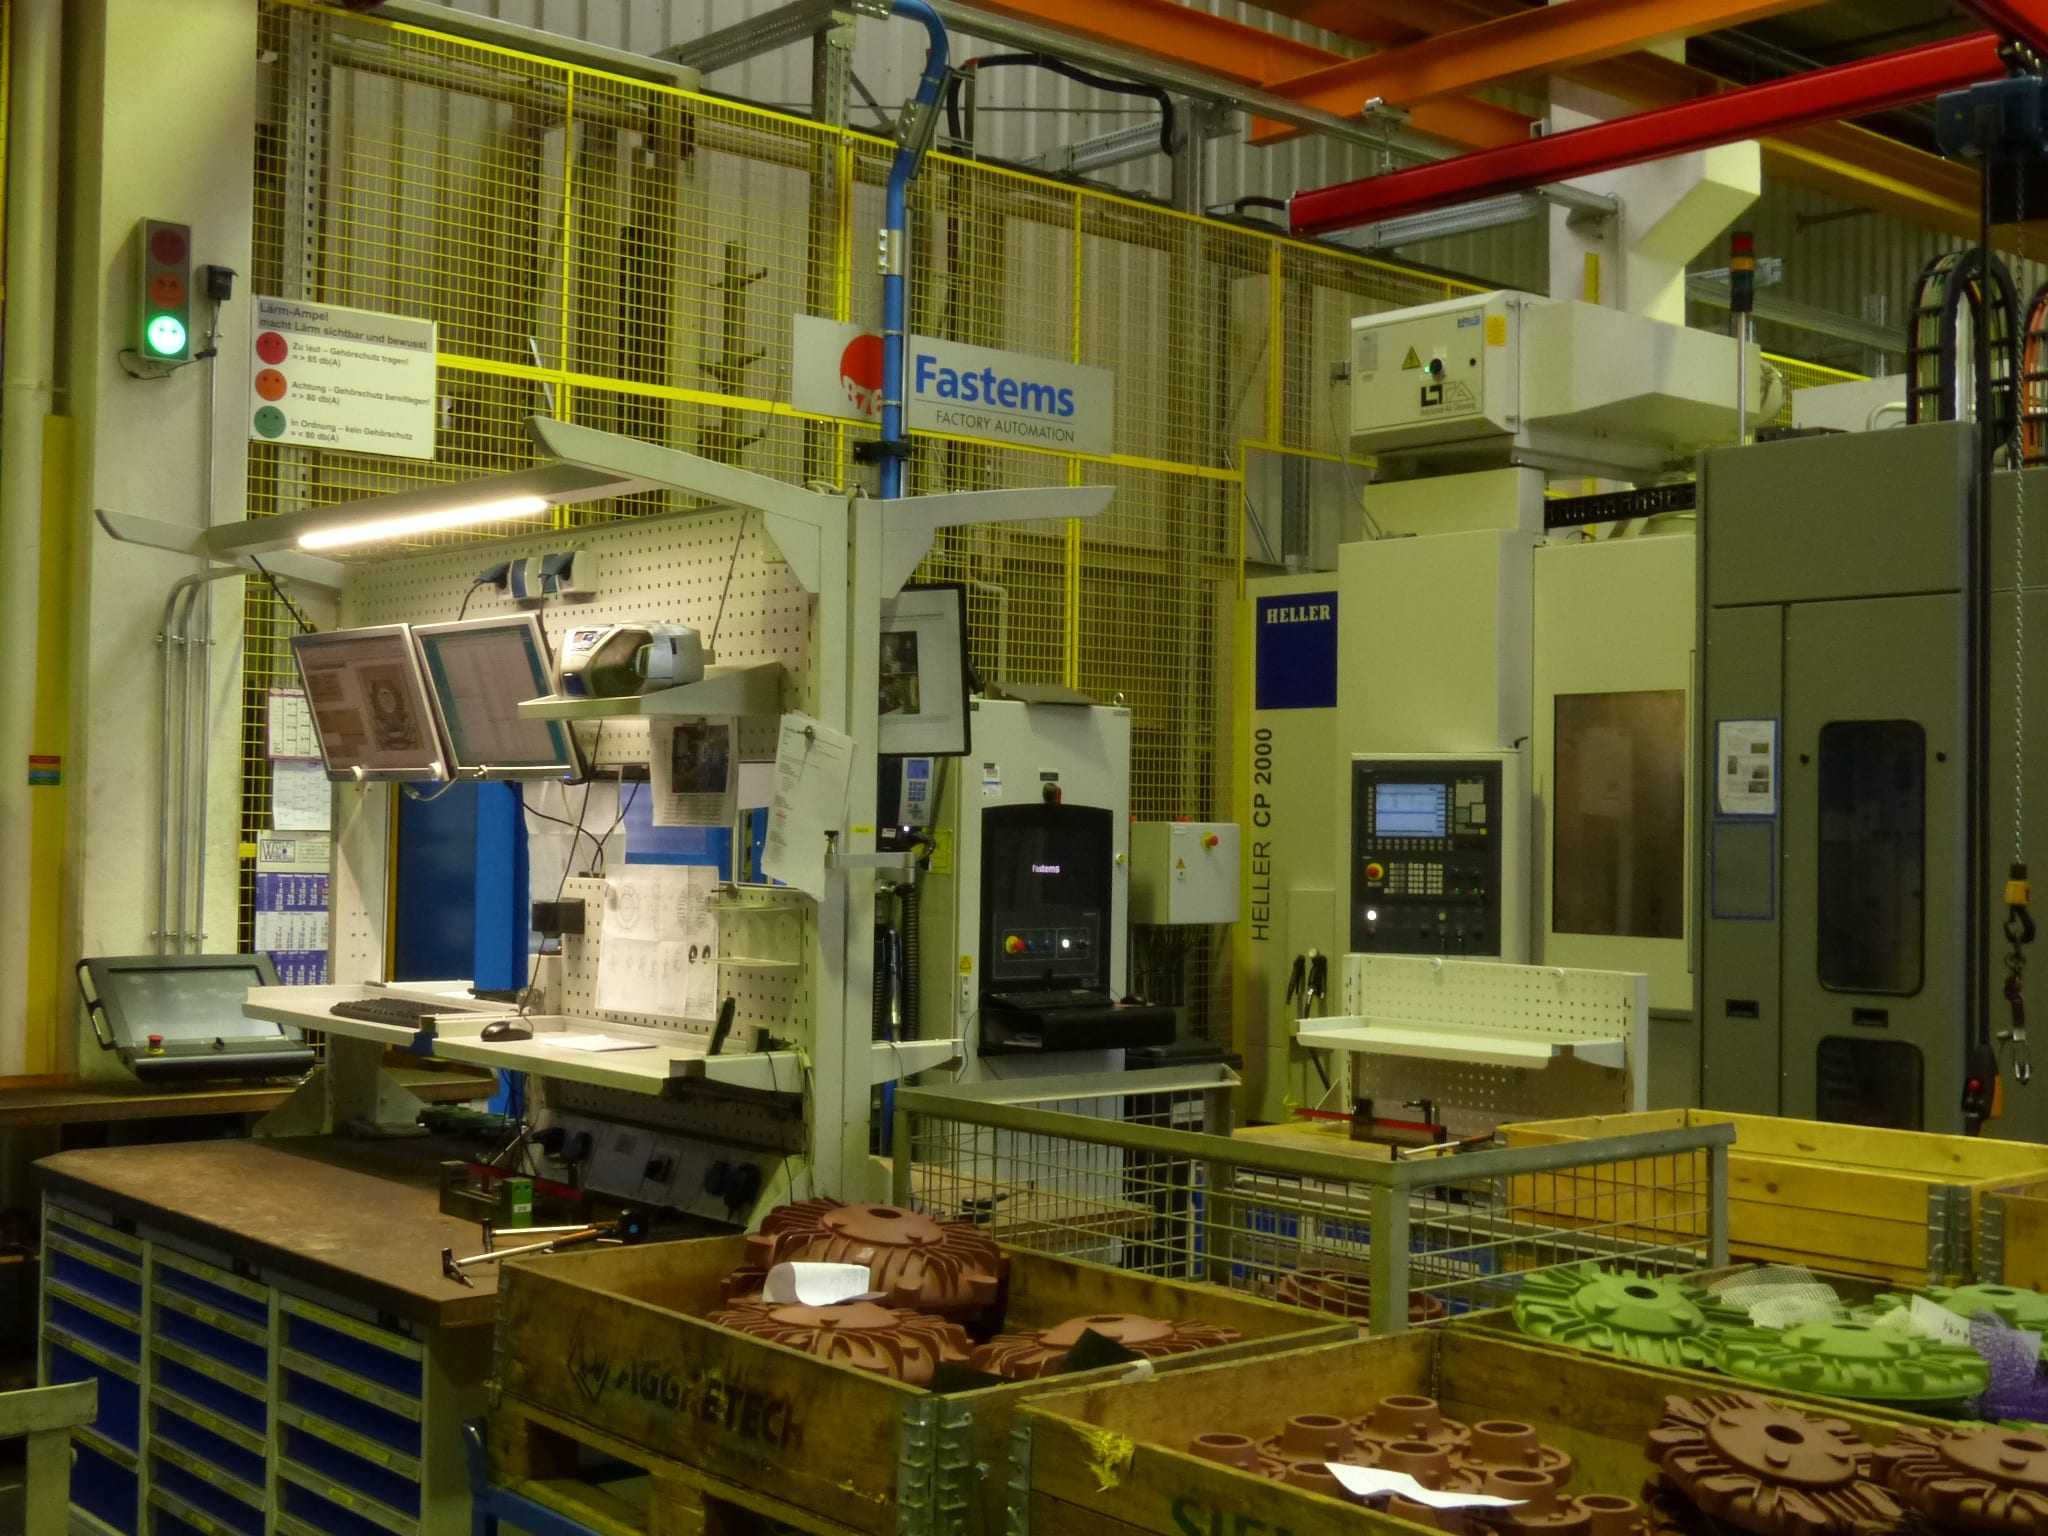 Fastems and Siemens Ruhstorf - Automation with impressive